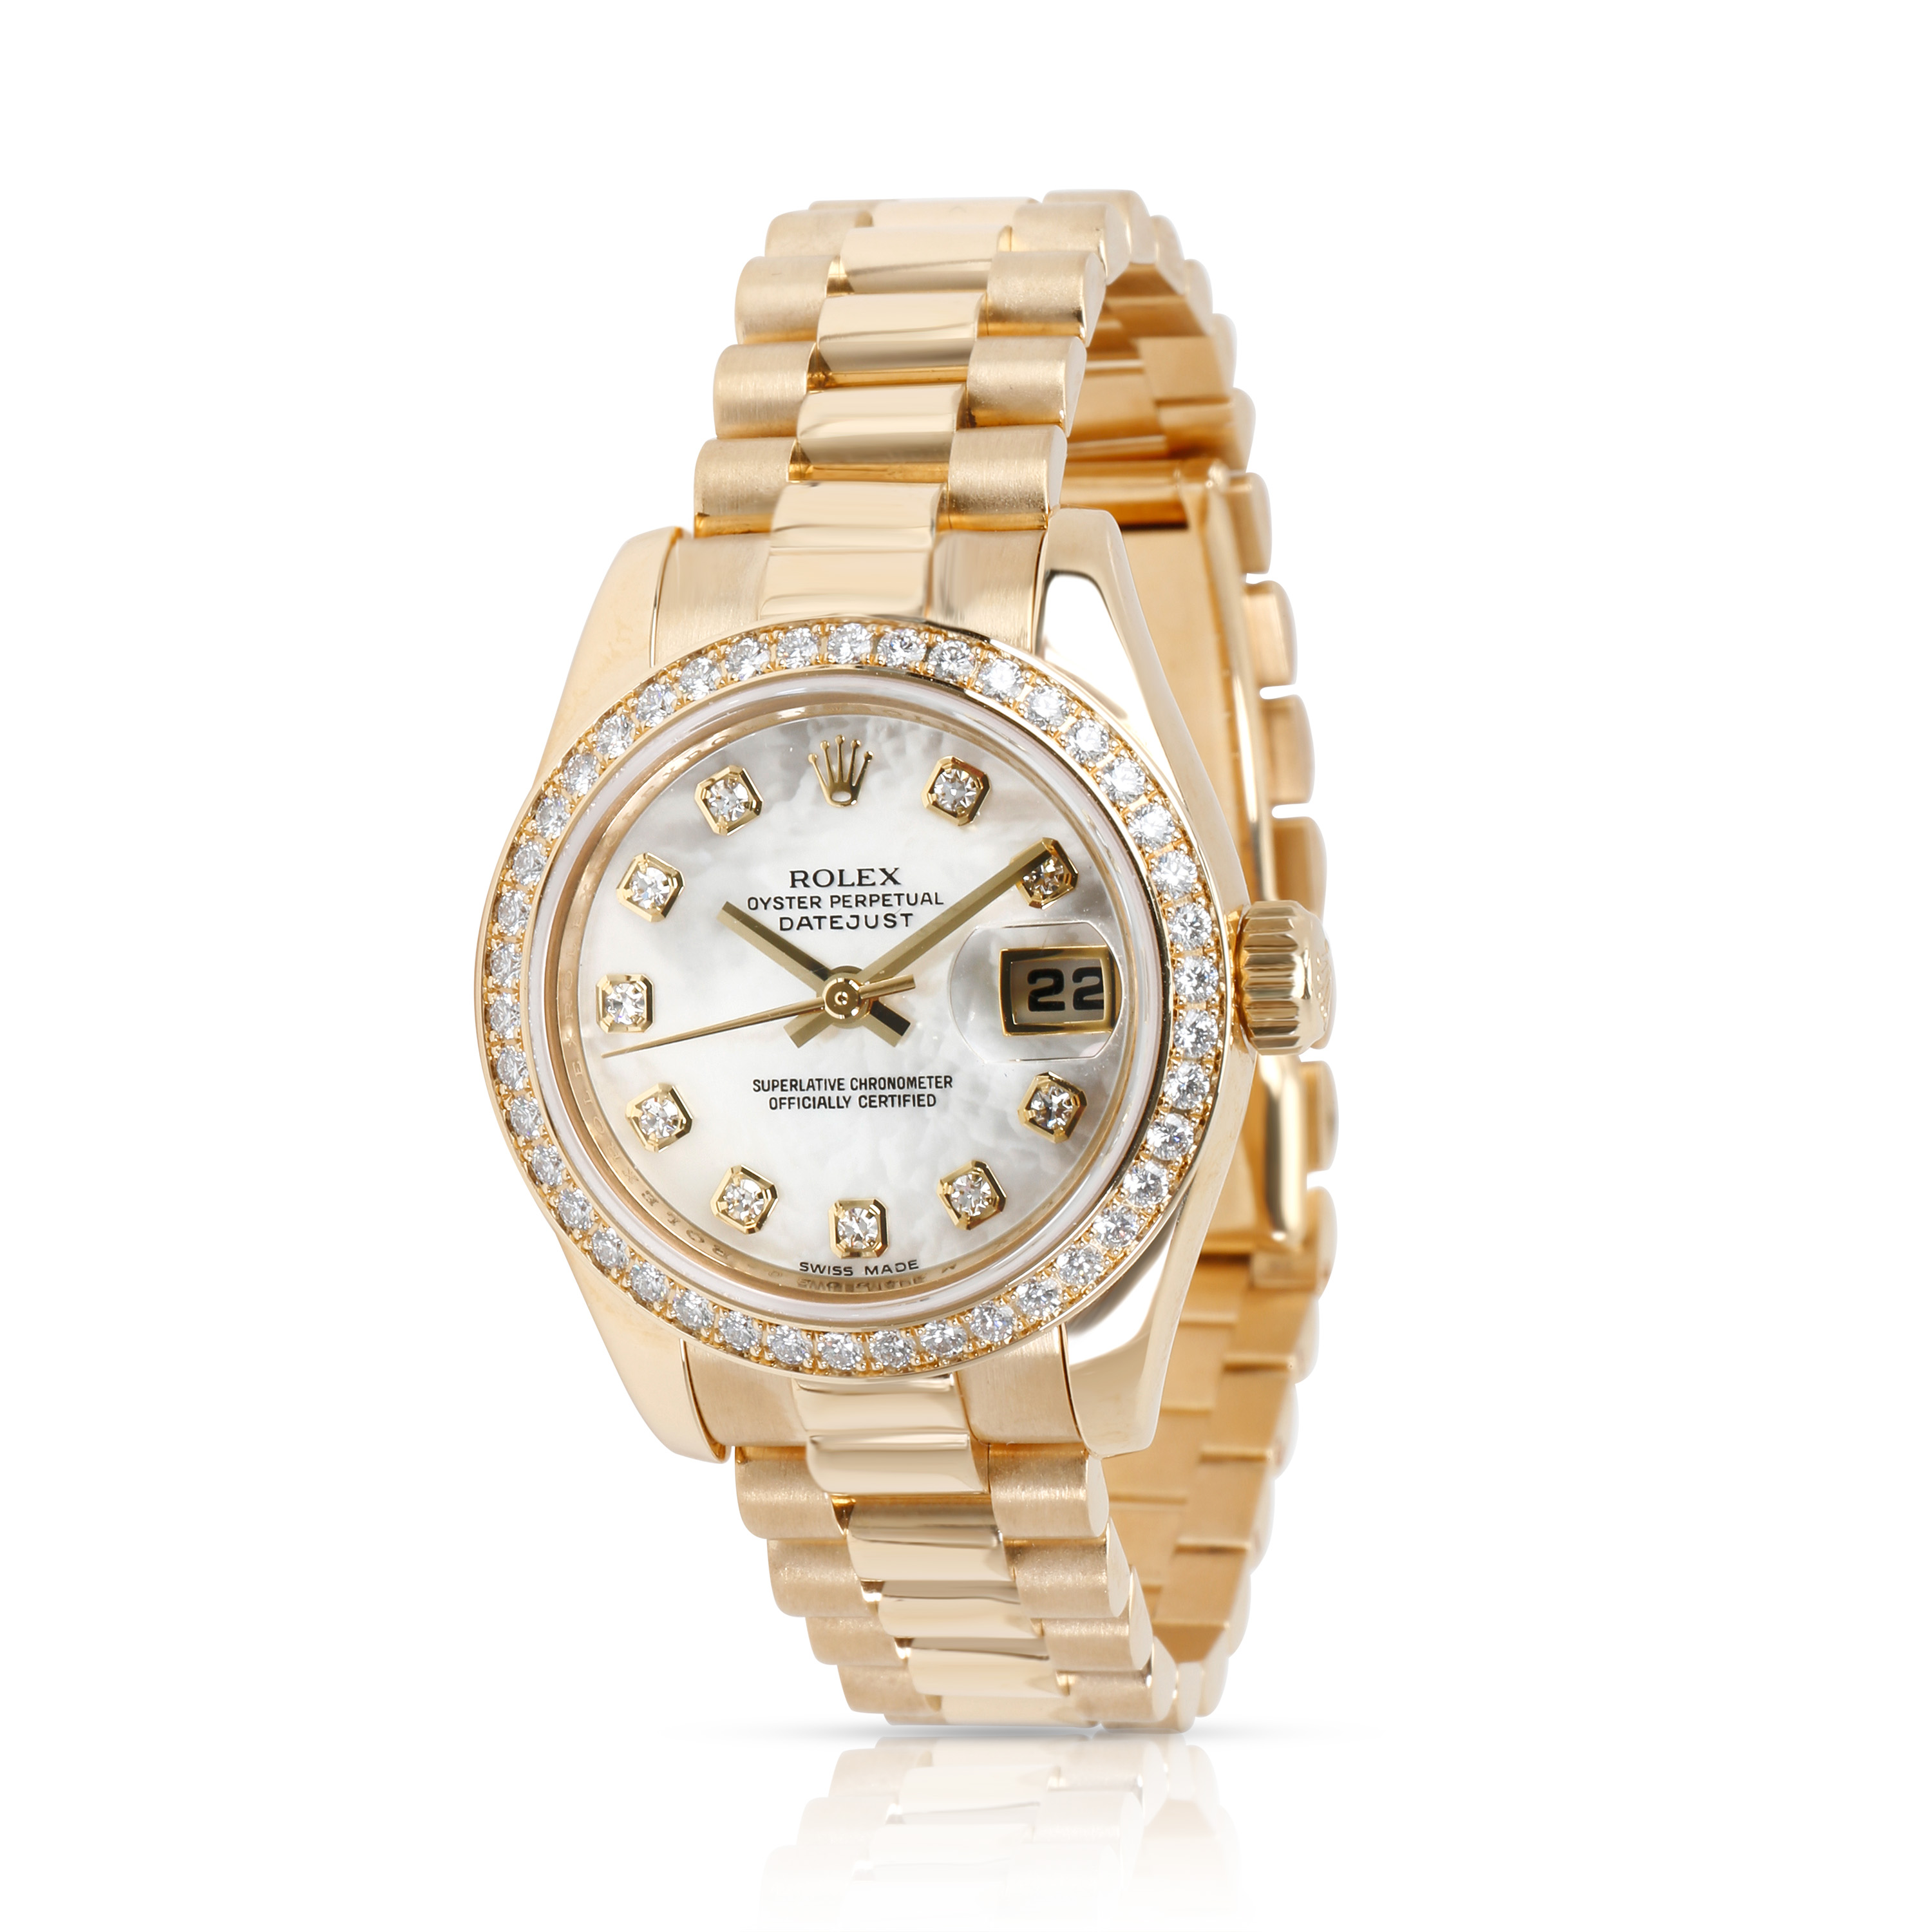 Rolex Datejust Women's Watch in 18kt Yellow Gold with diamonds